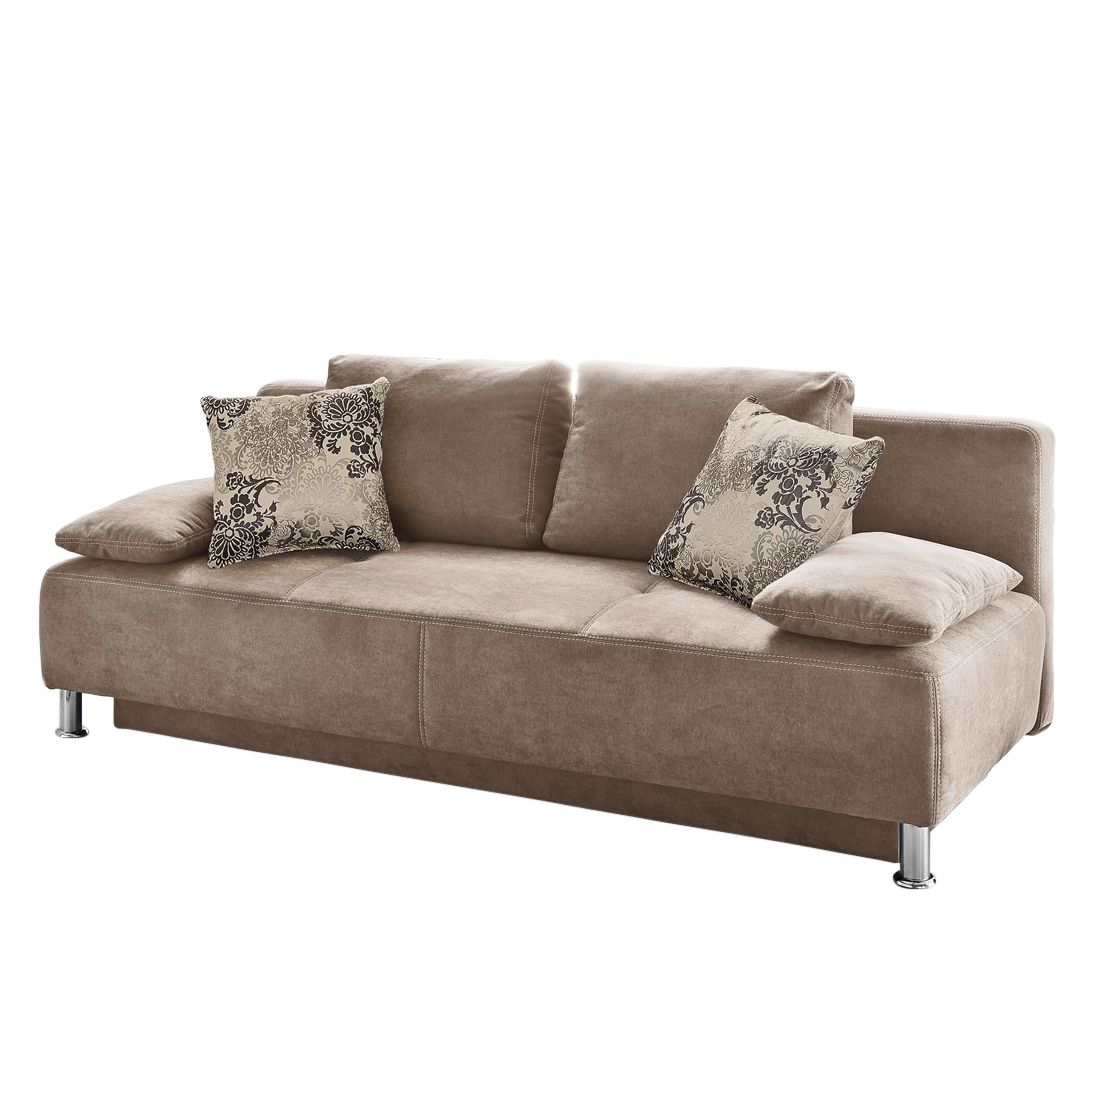 Canapé convertible Guam - Microfibre - Marron clair, Home Design